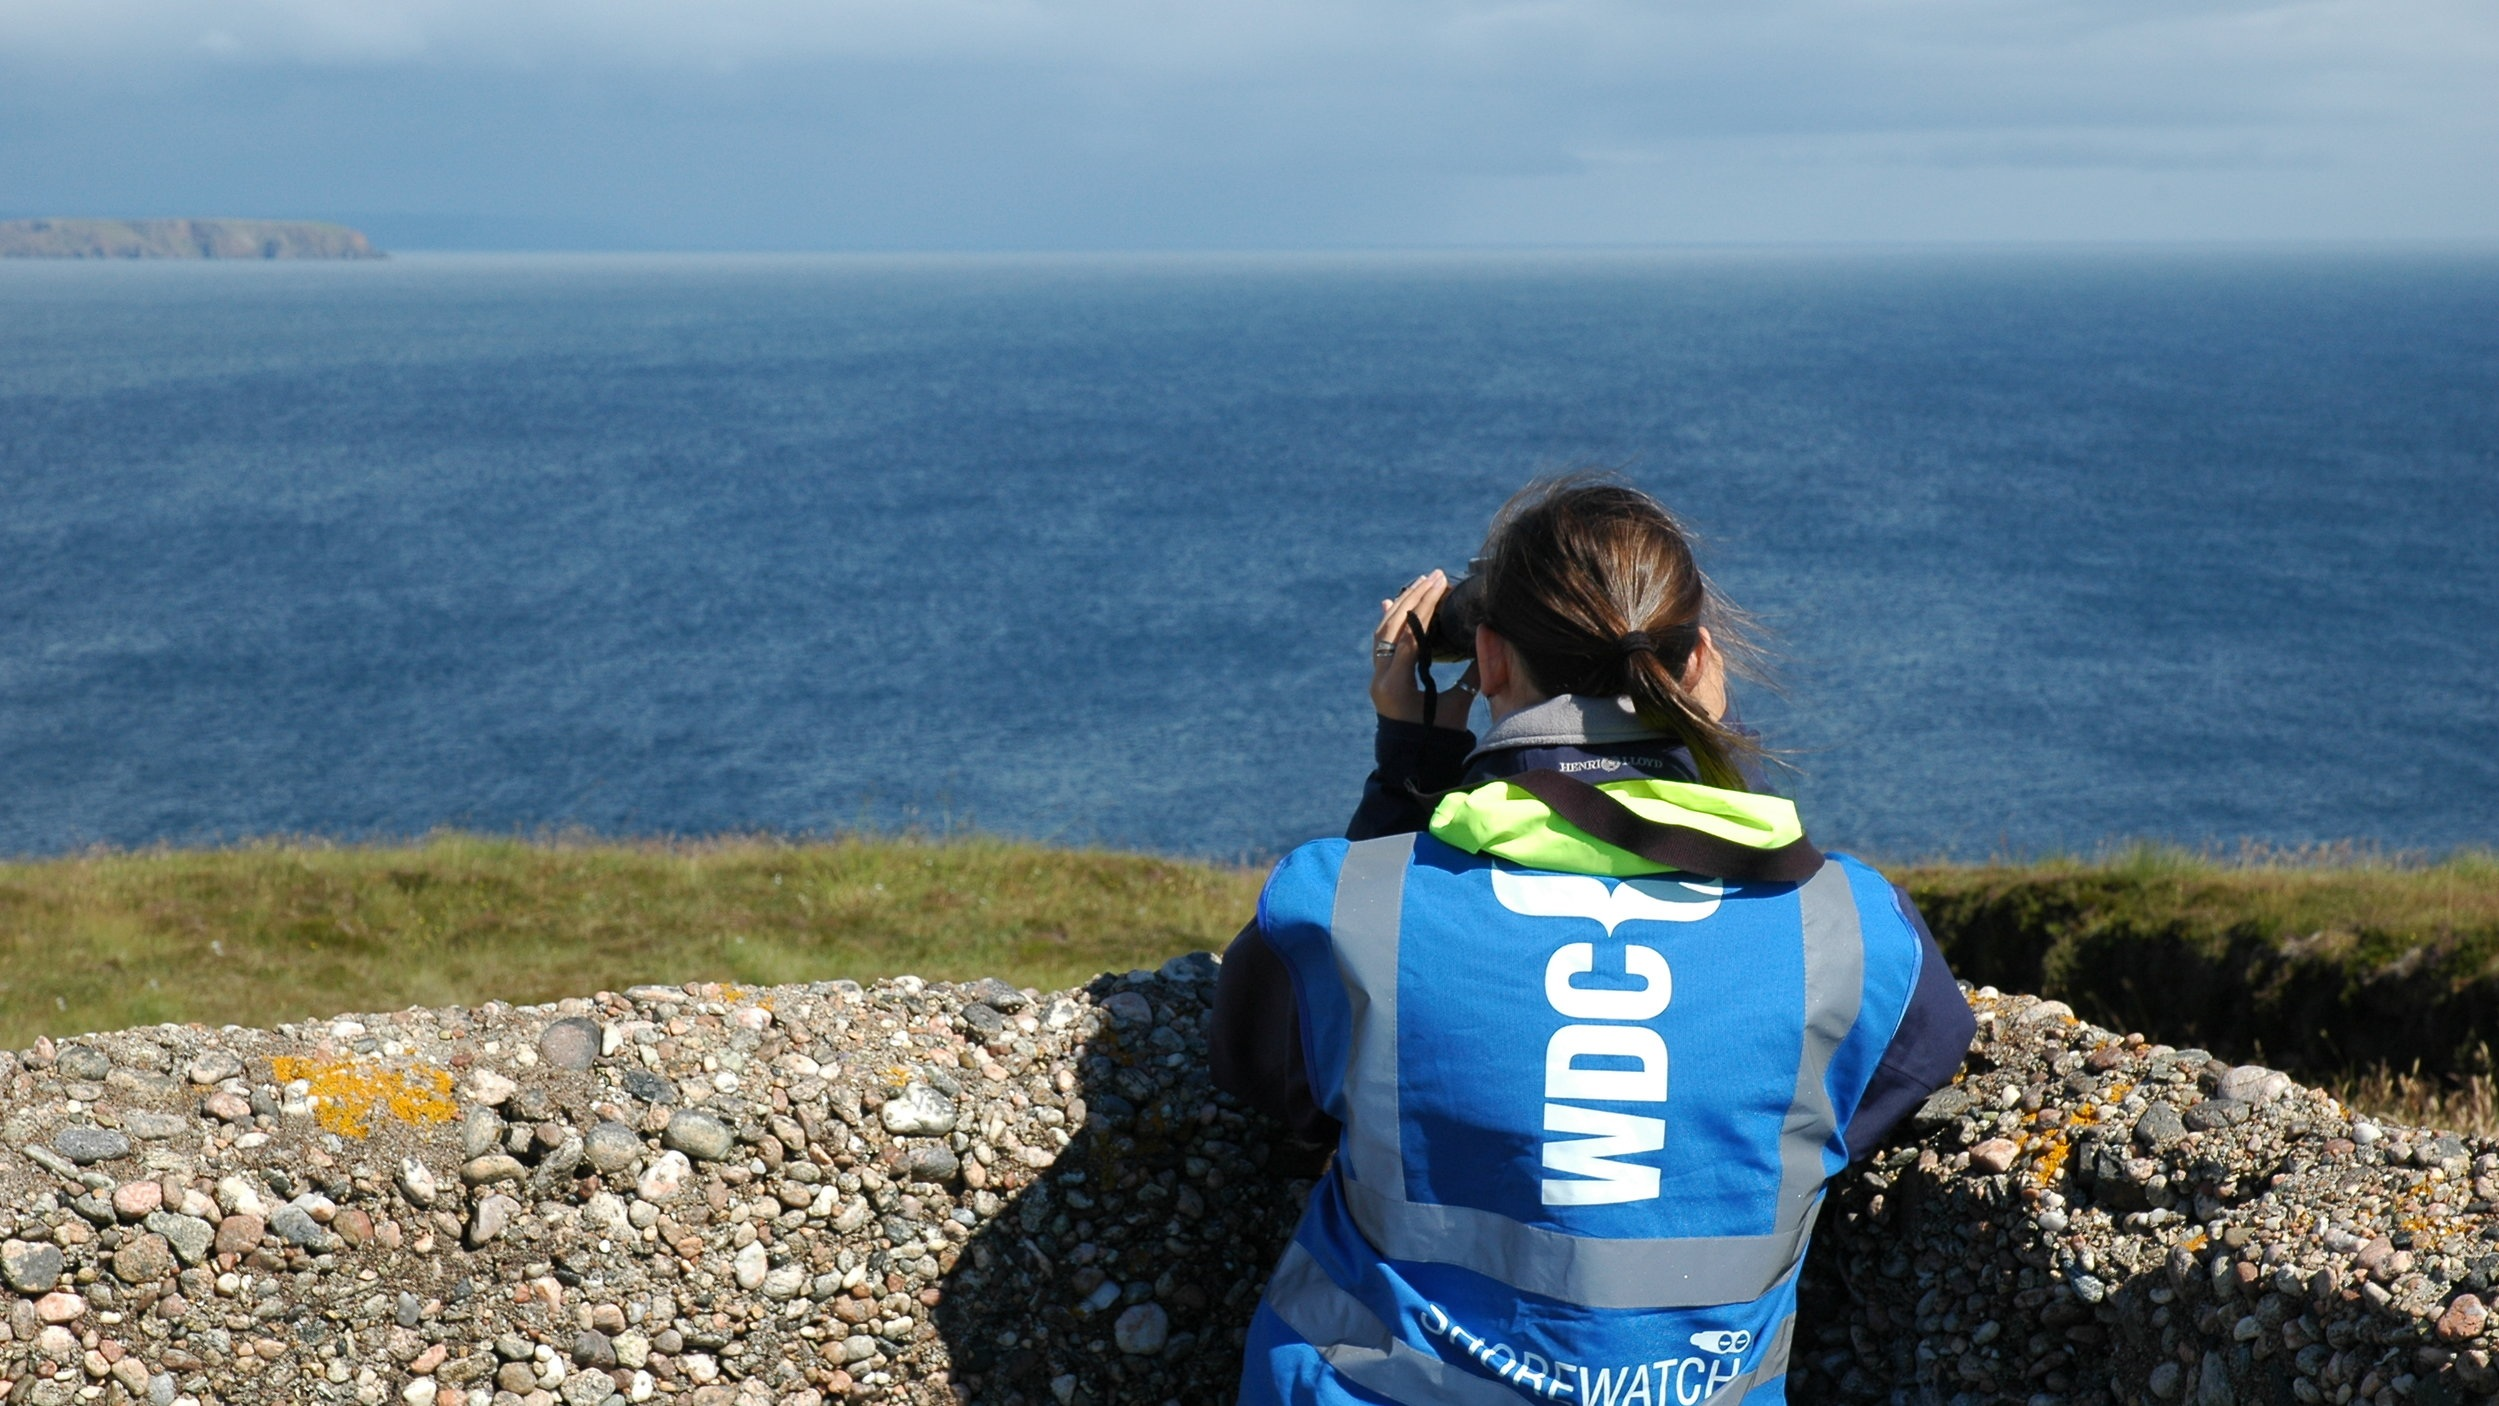 Join in! - It's well known just how incredible Tiumpan Head is for watching whales and dolphins, so its no surprise you will often find good company while watching from here. Volunteers for the WDC Shorewatch programme regularly monitor the seas from here. They are a knowledgeable and friendly bunch out spotting from atop the hill, so pop up and say hello. To hear more about their amazing sightings, have a look at their Facebook group Tiumpan Head Watchers.Image © WDC